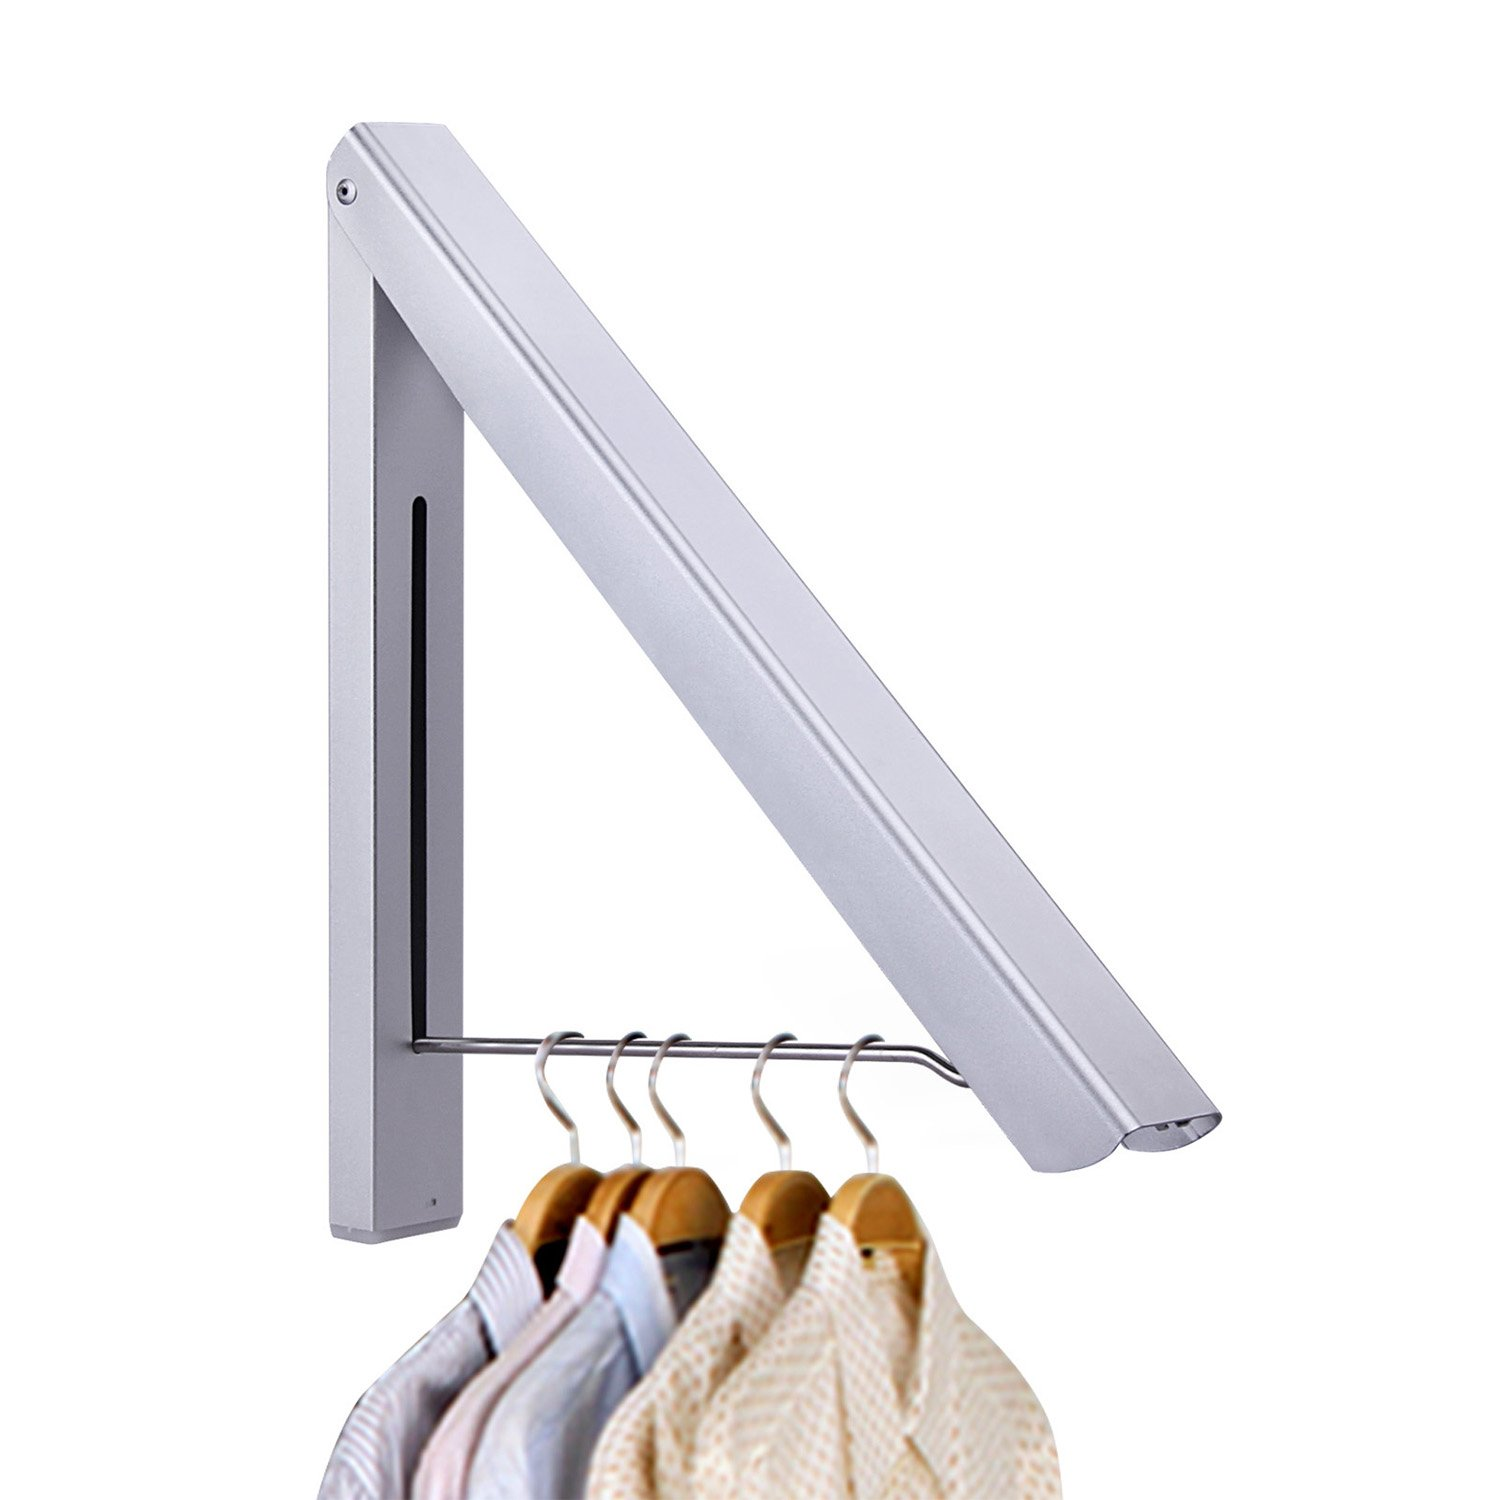 Aluminium Alloy Clothes Hanging System Free-Screw and Screwed Two-Way Installation Clothes Hanger